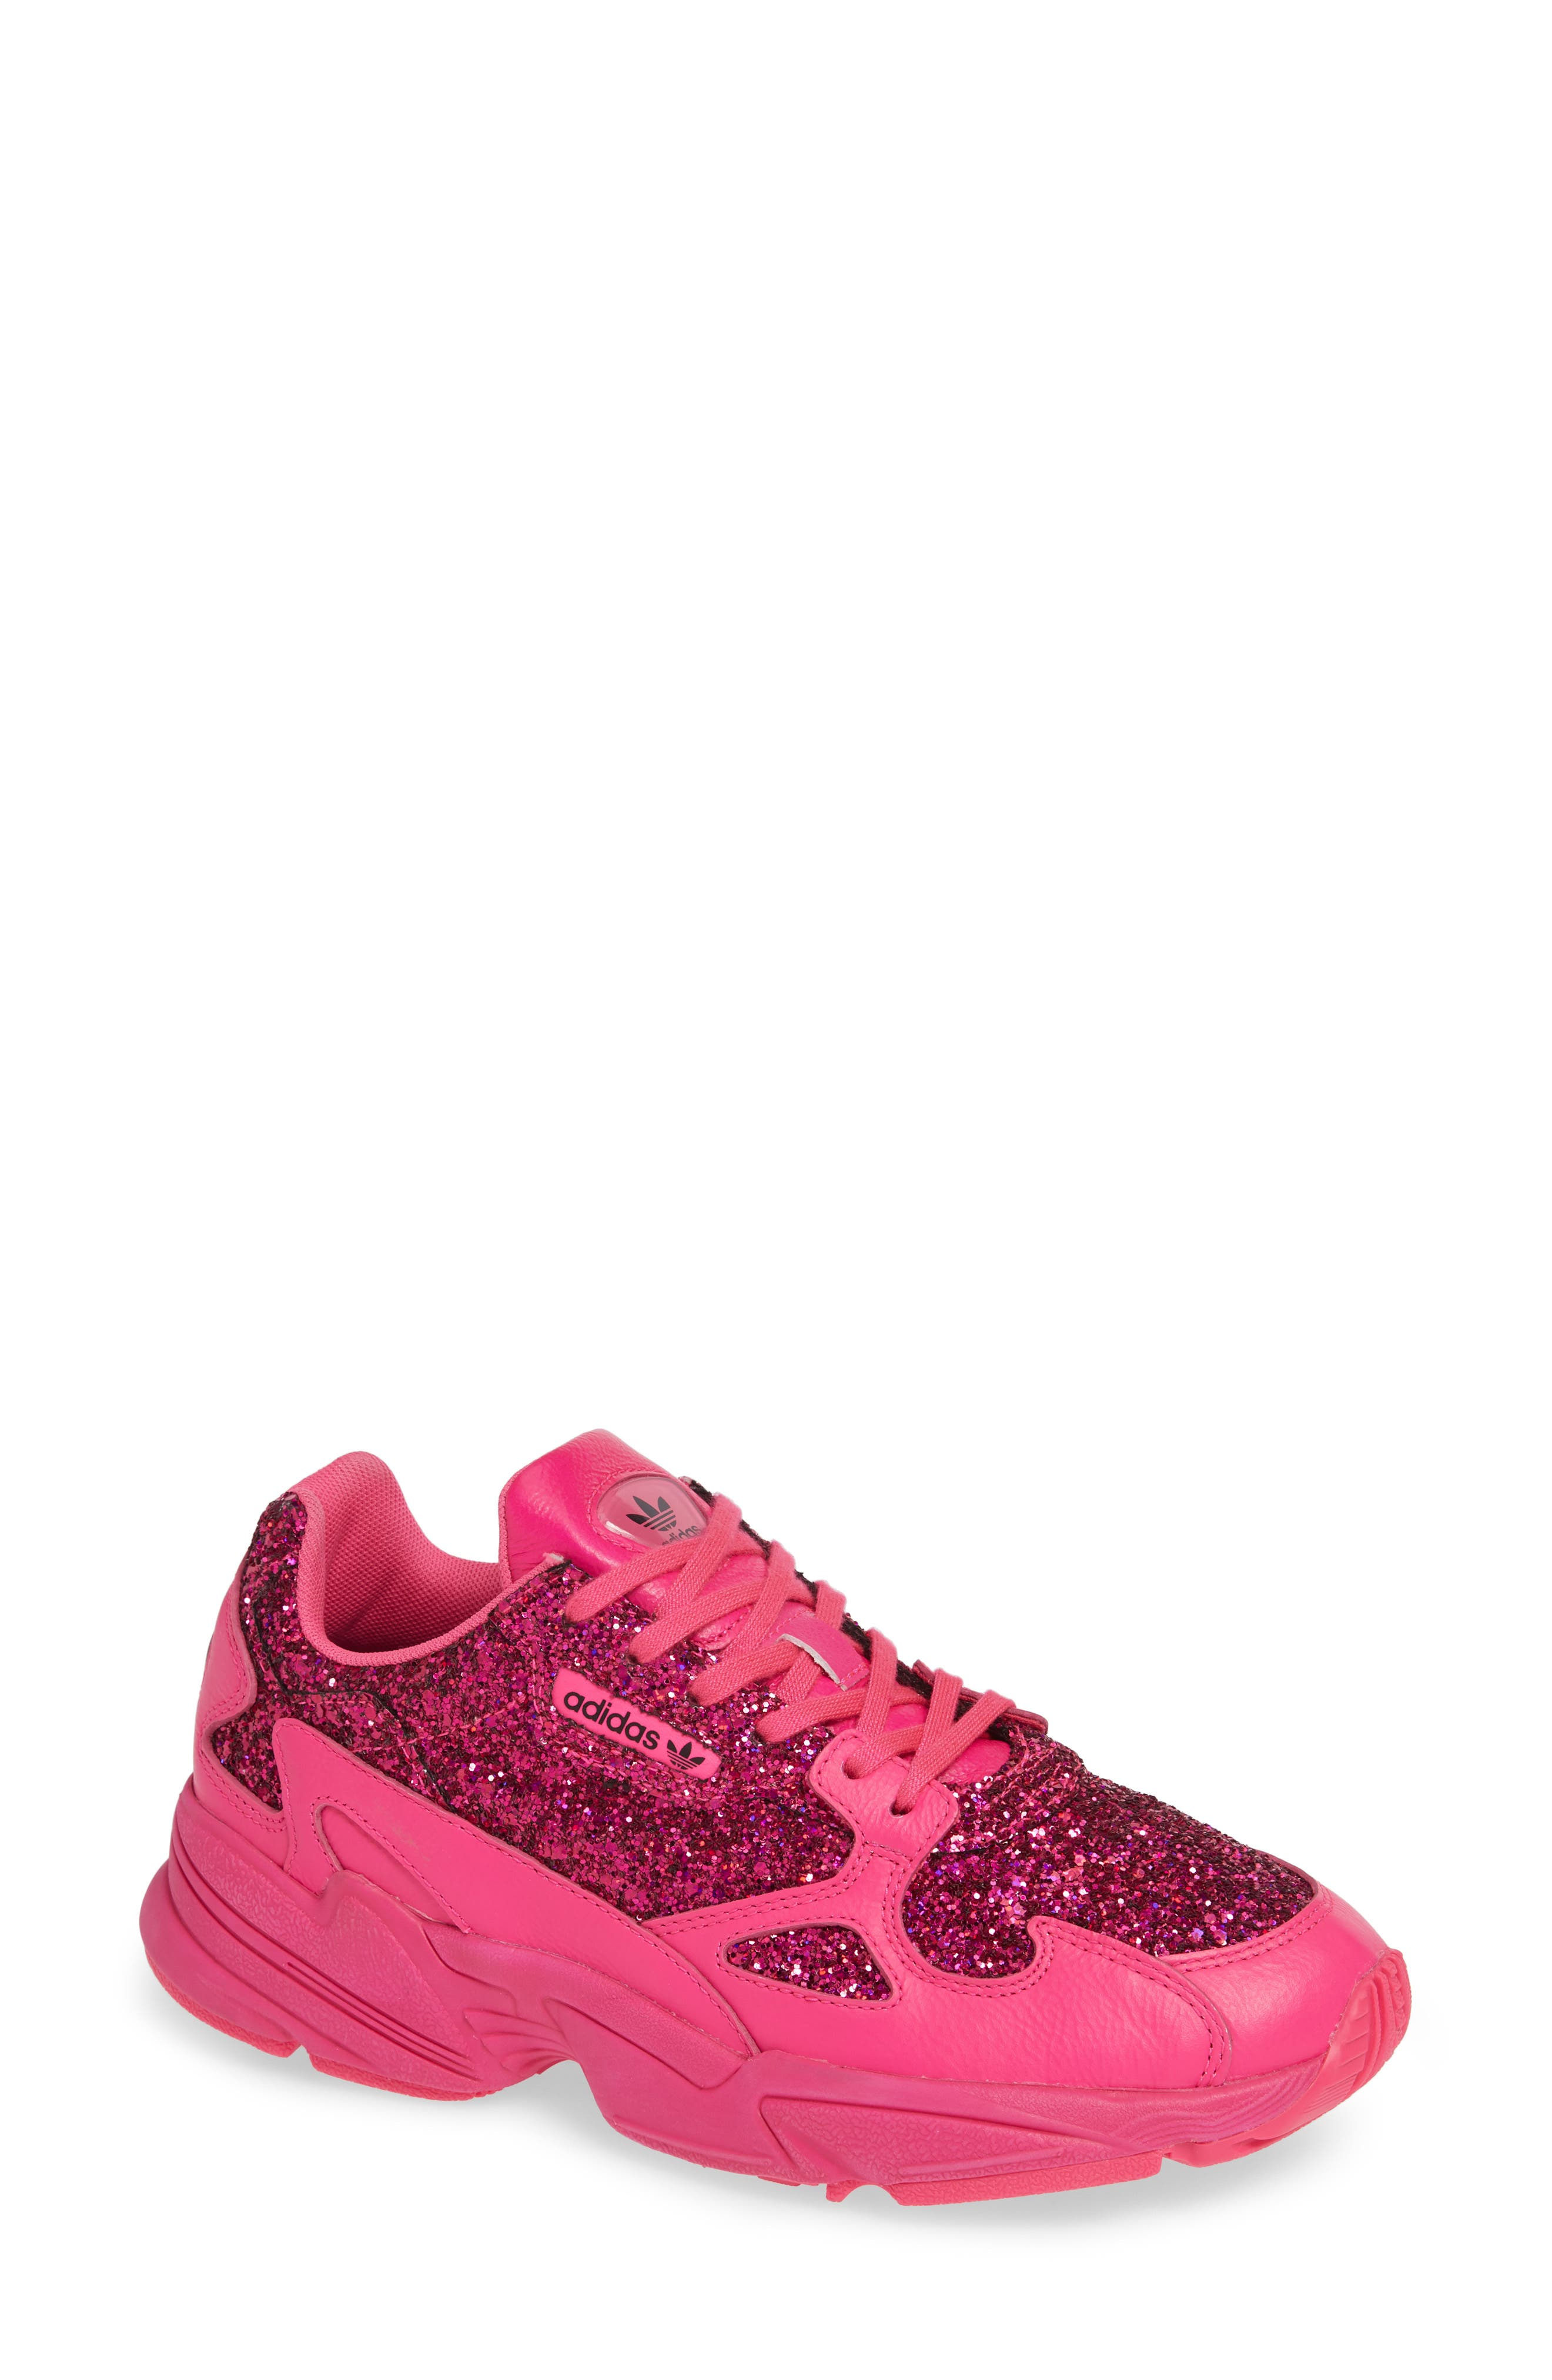 21bc817b0be57 italy the sparkling shoes nmdtrainers adidas 15599 ac990  best price adidas  falcon out loud sneakers women 8c762 b9343